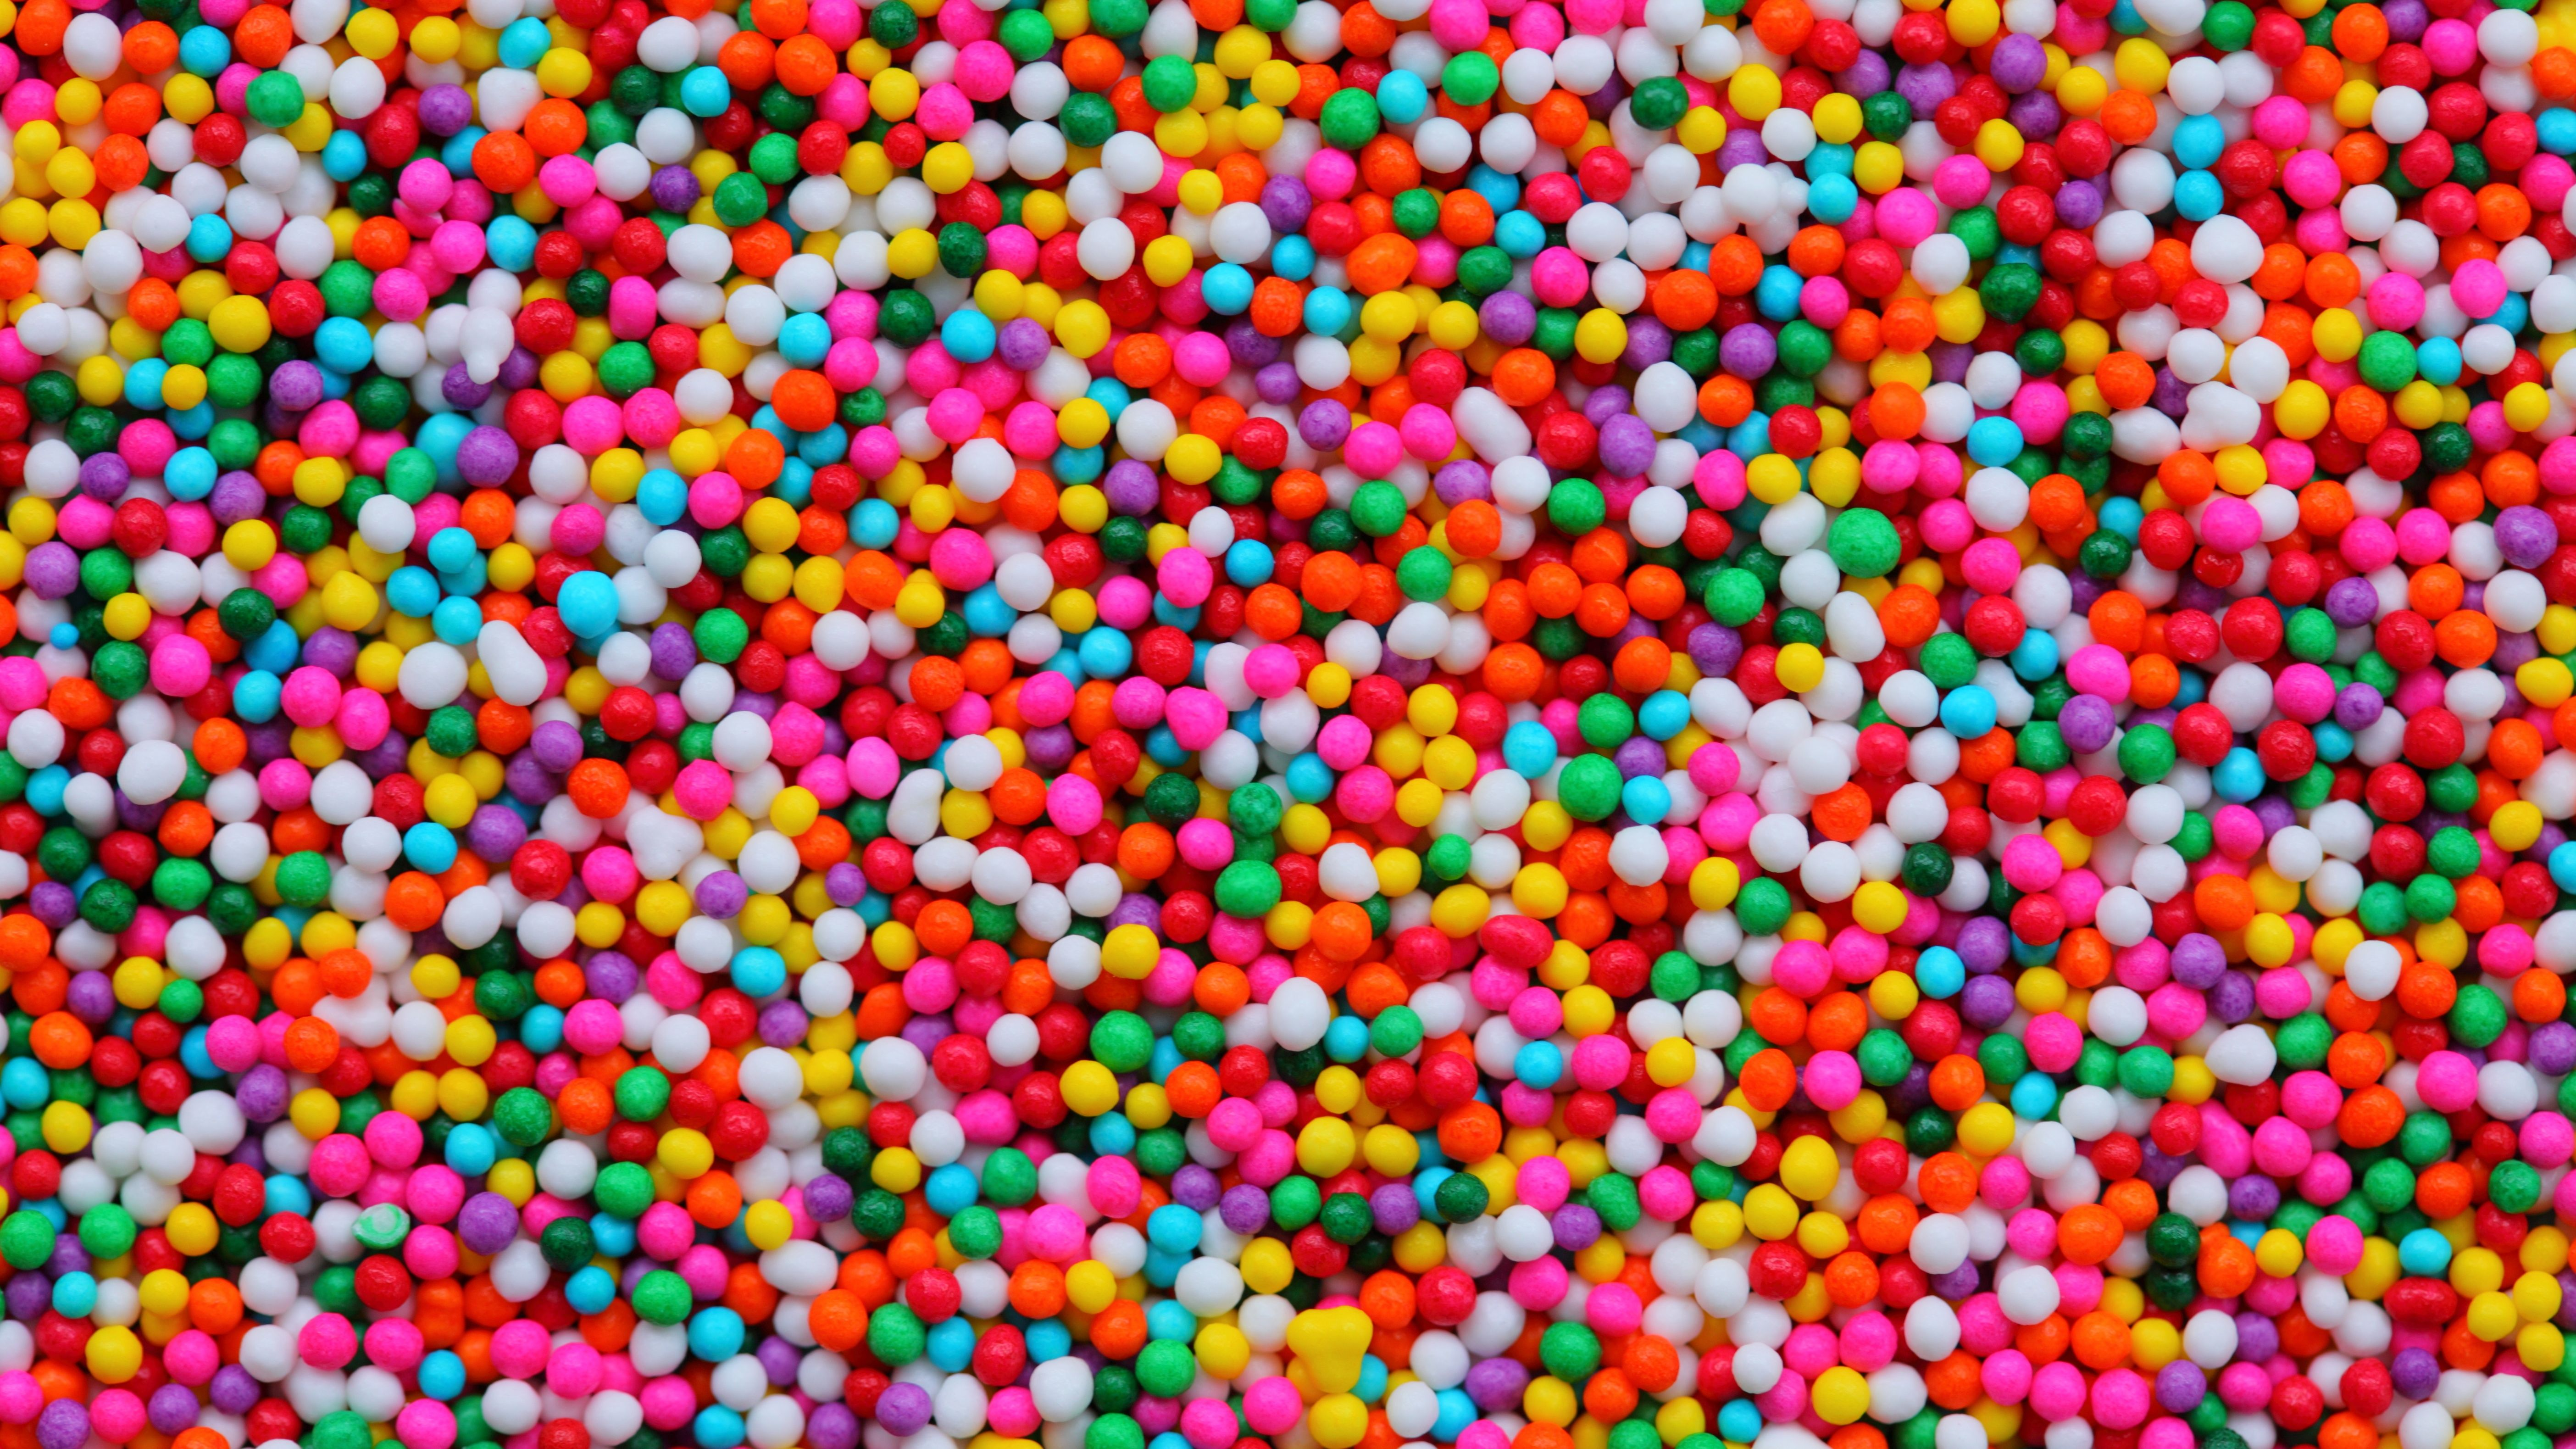 Candy 5k Retina Ultra HD Wallpaper And Background Image